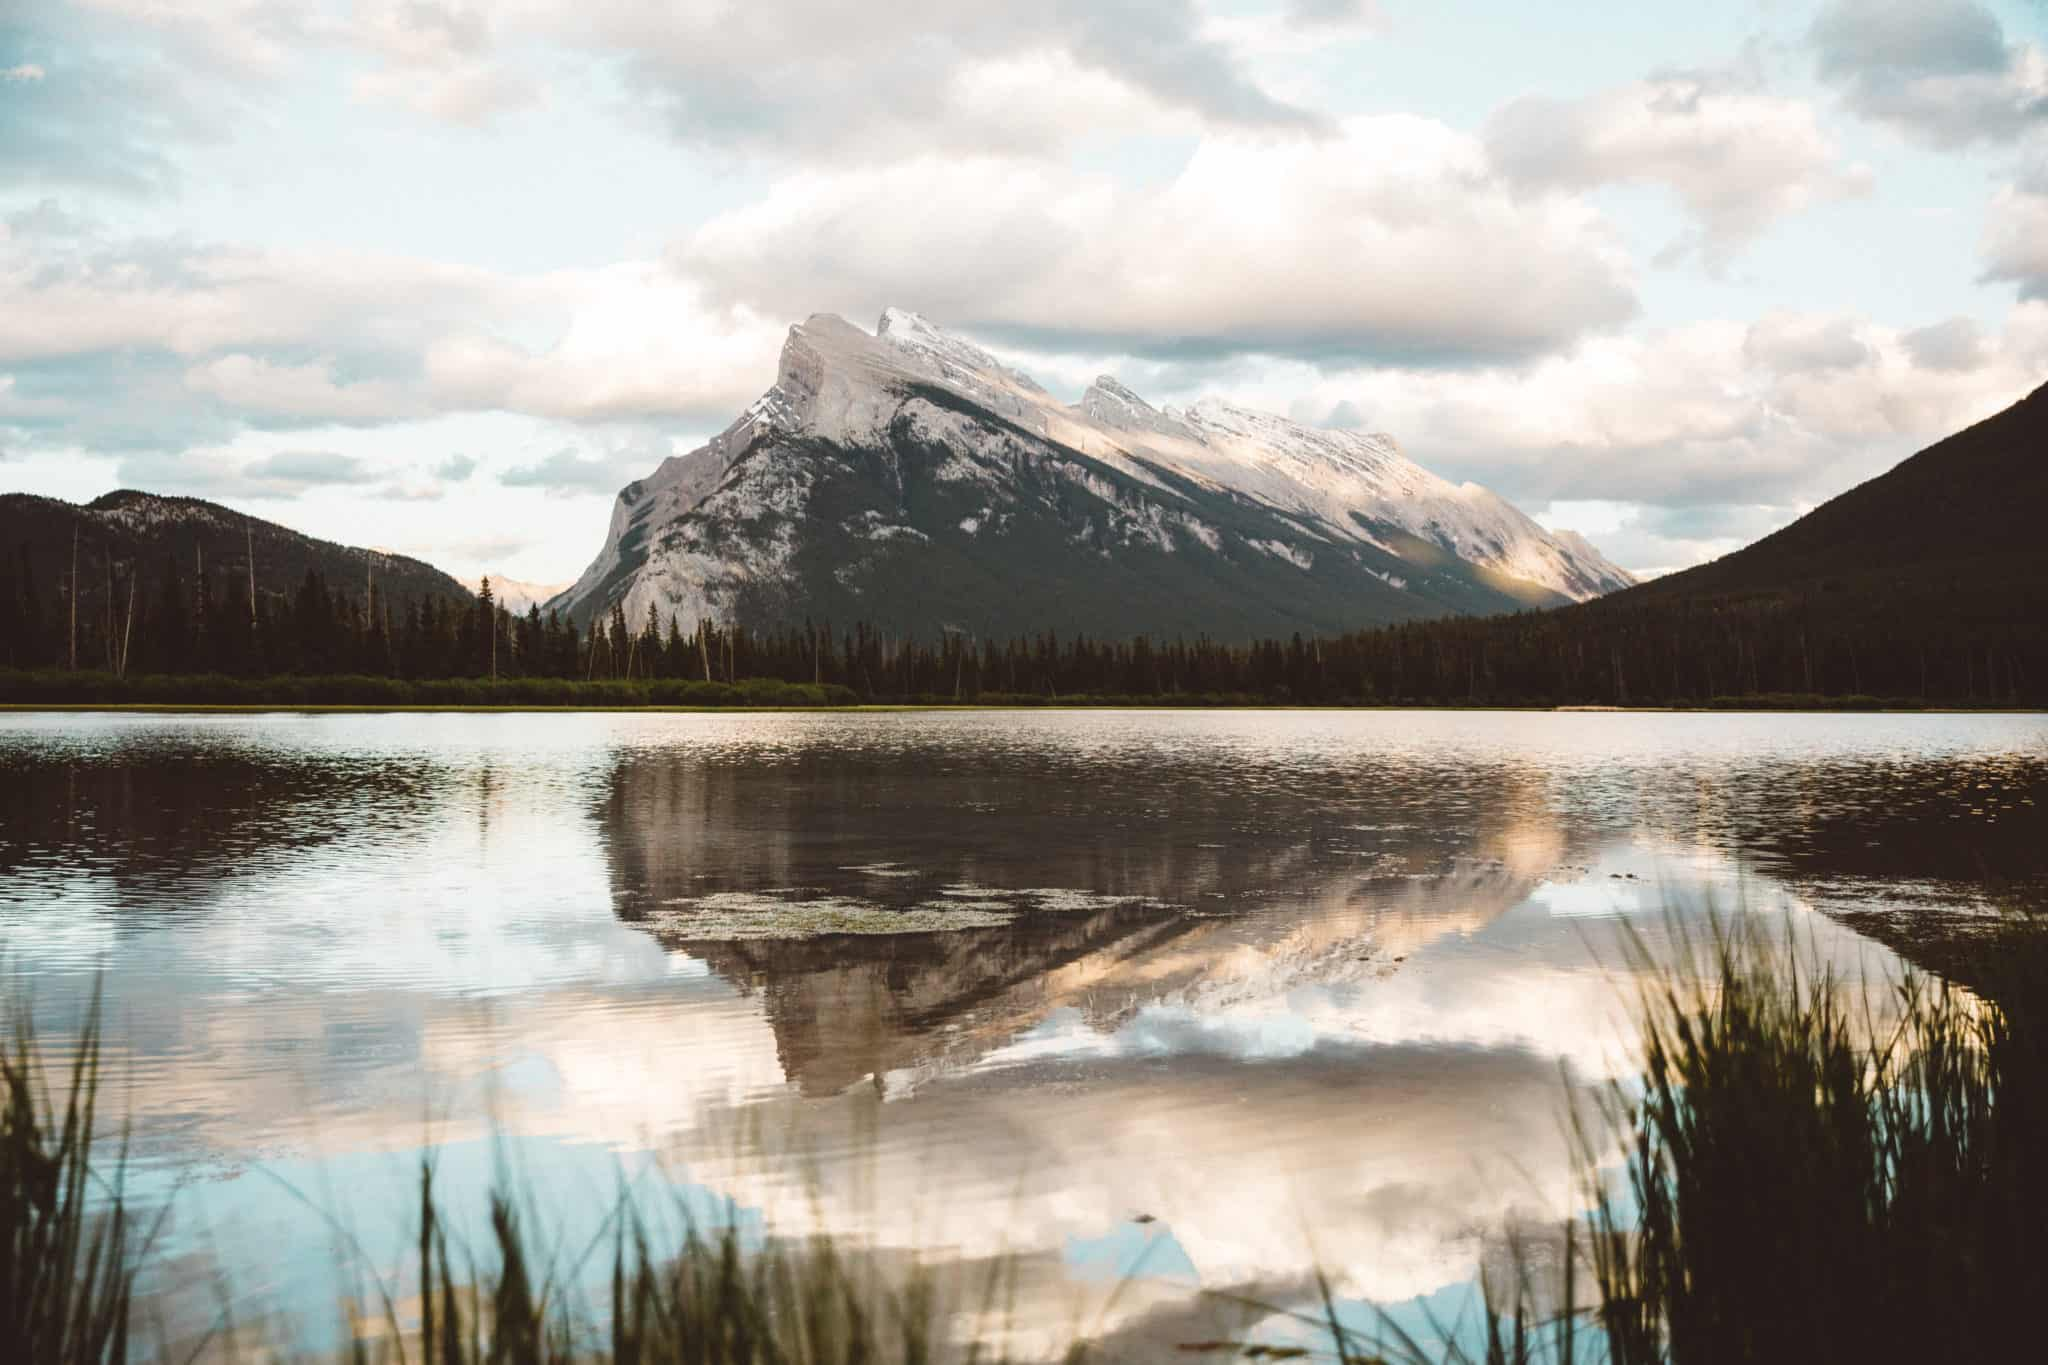 20 Adventurous Things To Do In Banff, Canada - Mount Rundle